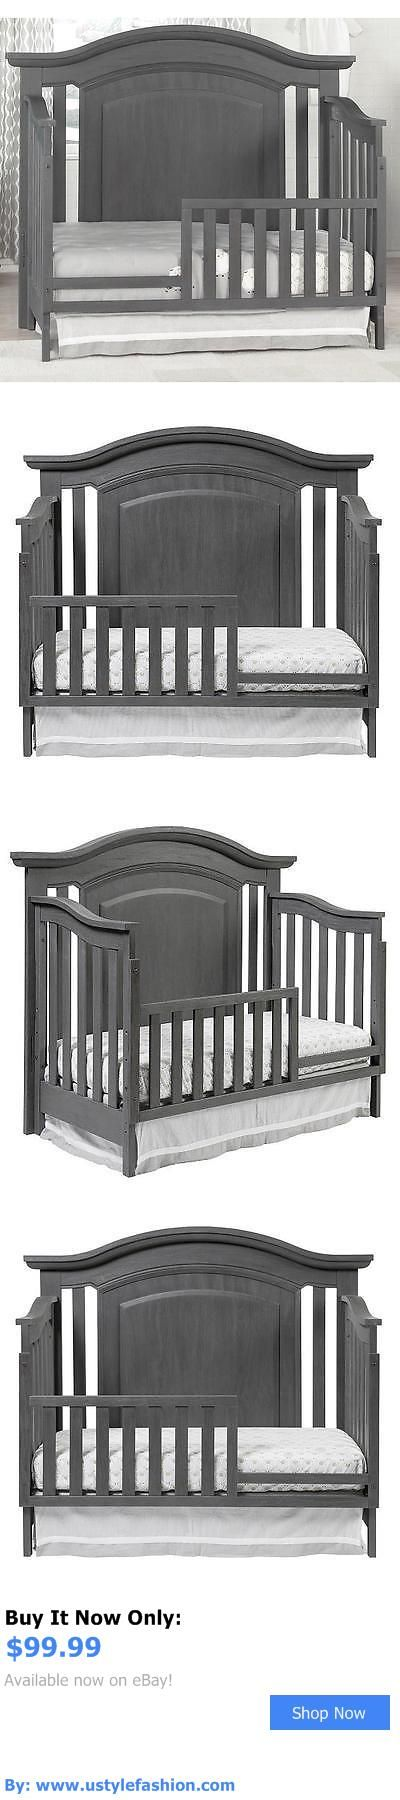 Nursery Furniture Sets: Oxford Baby London Lane Toddler Guard Rail - Arctic Gray BUY IT NOW ONLY: $99.99 #ustylefashionNurseryFurnitureSets OR #ustylefashion